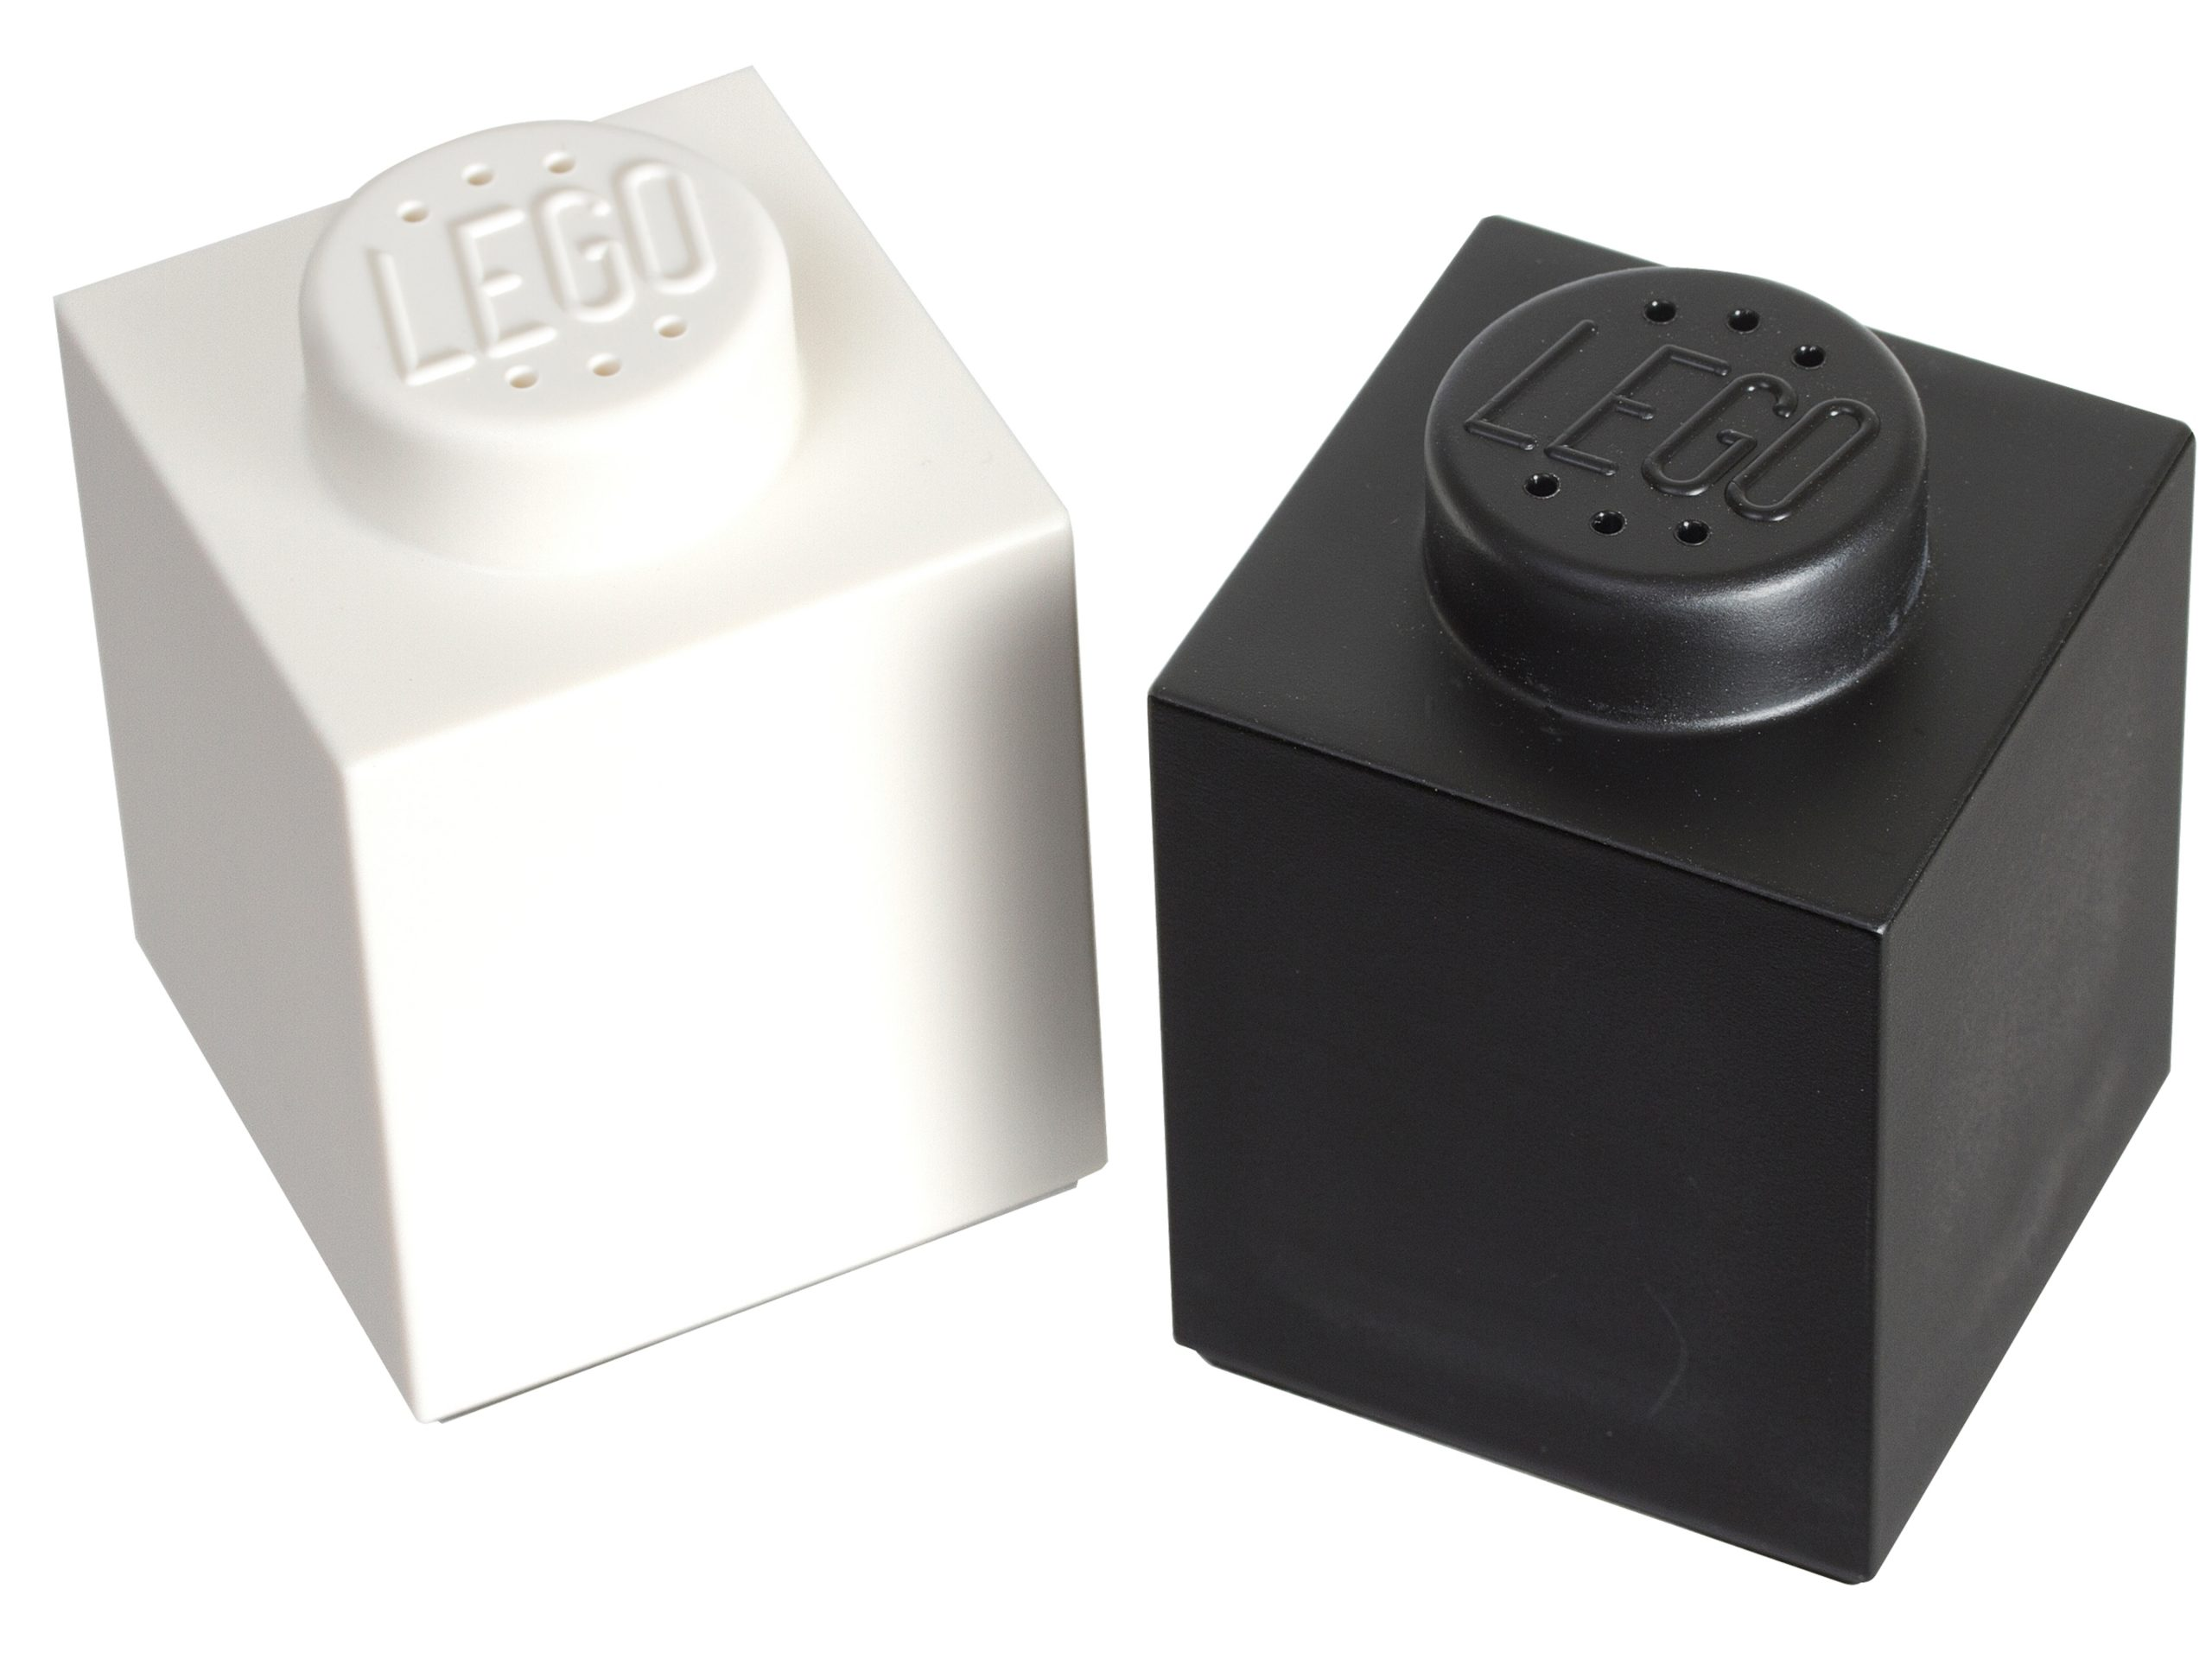 lego 850705 salt and pepper set scaled